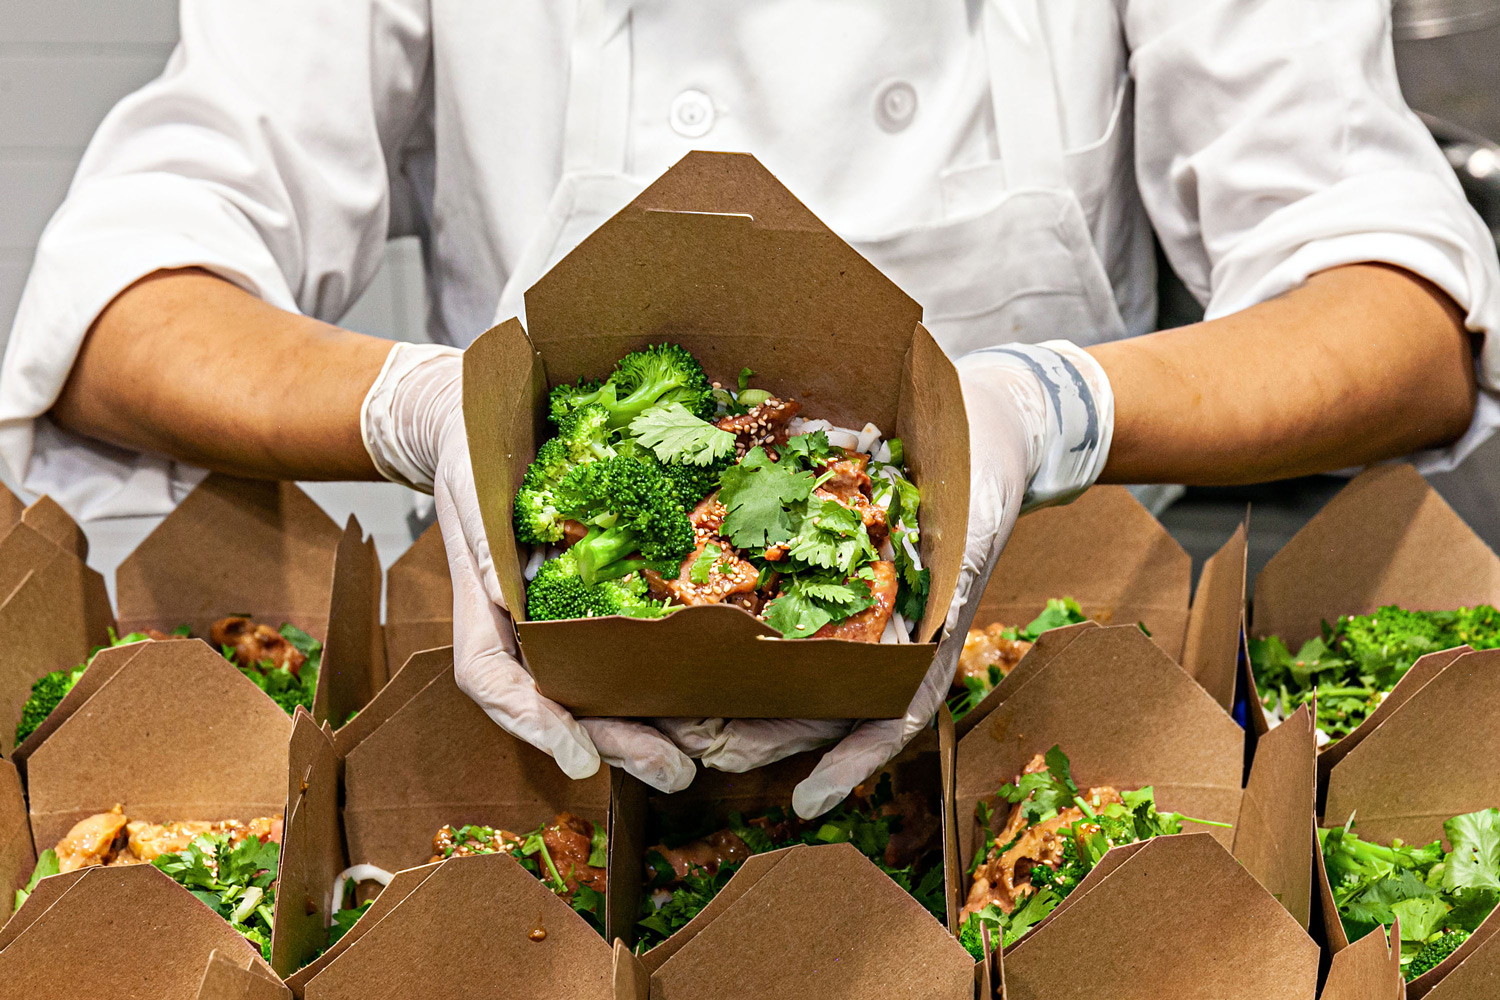 chef showing boxed fresh food